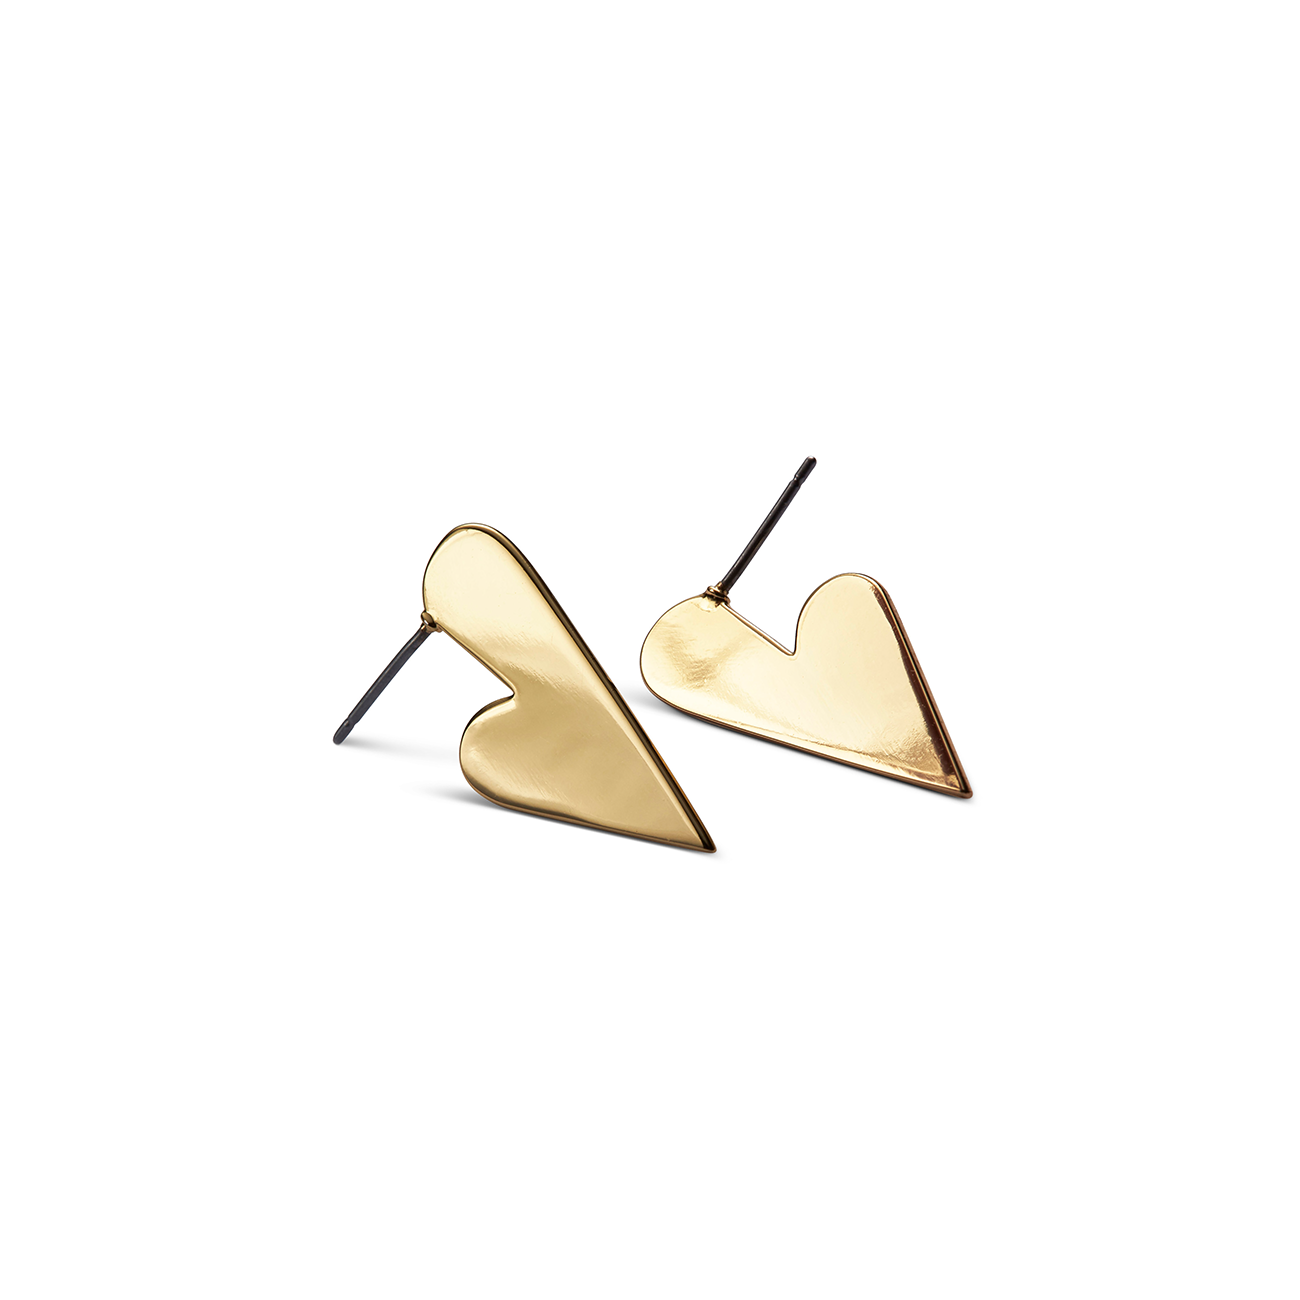 Lovestruck Earrings by Jenny Bird in Gold